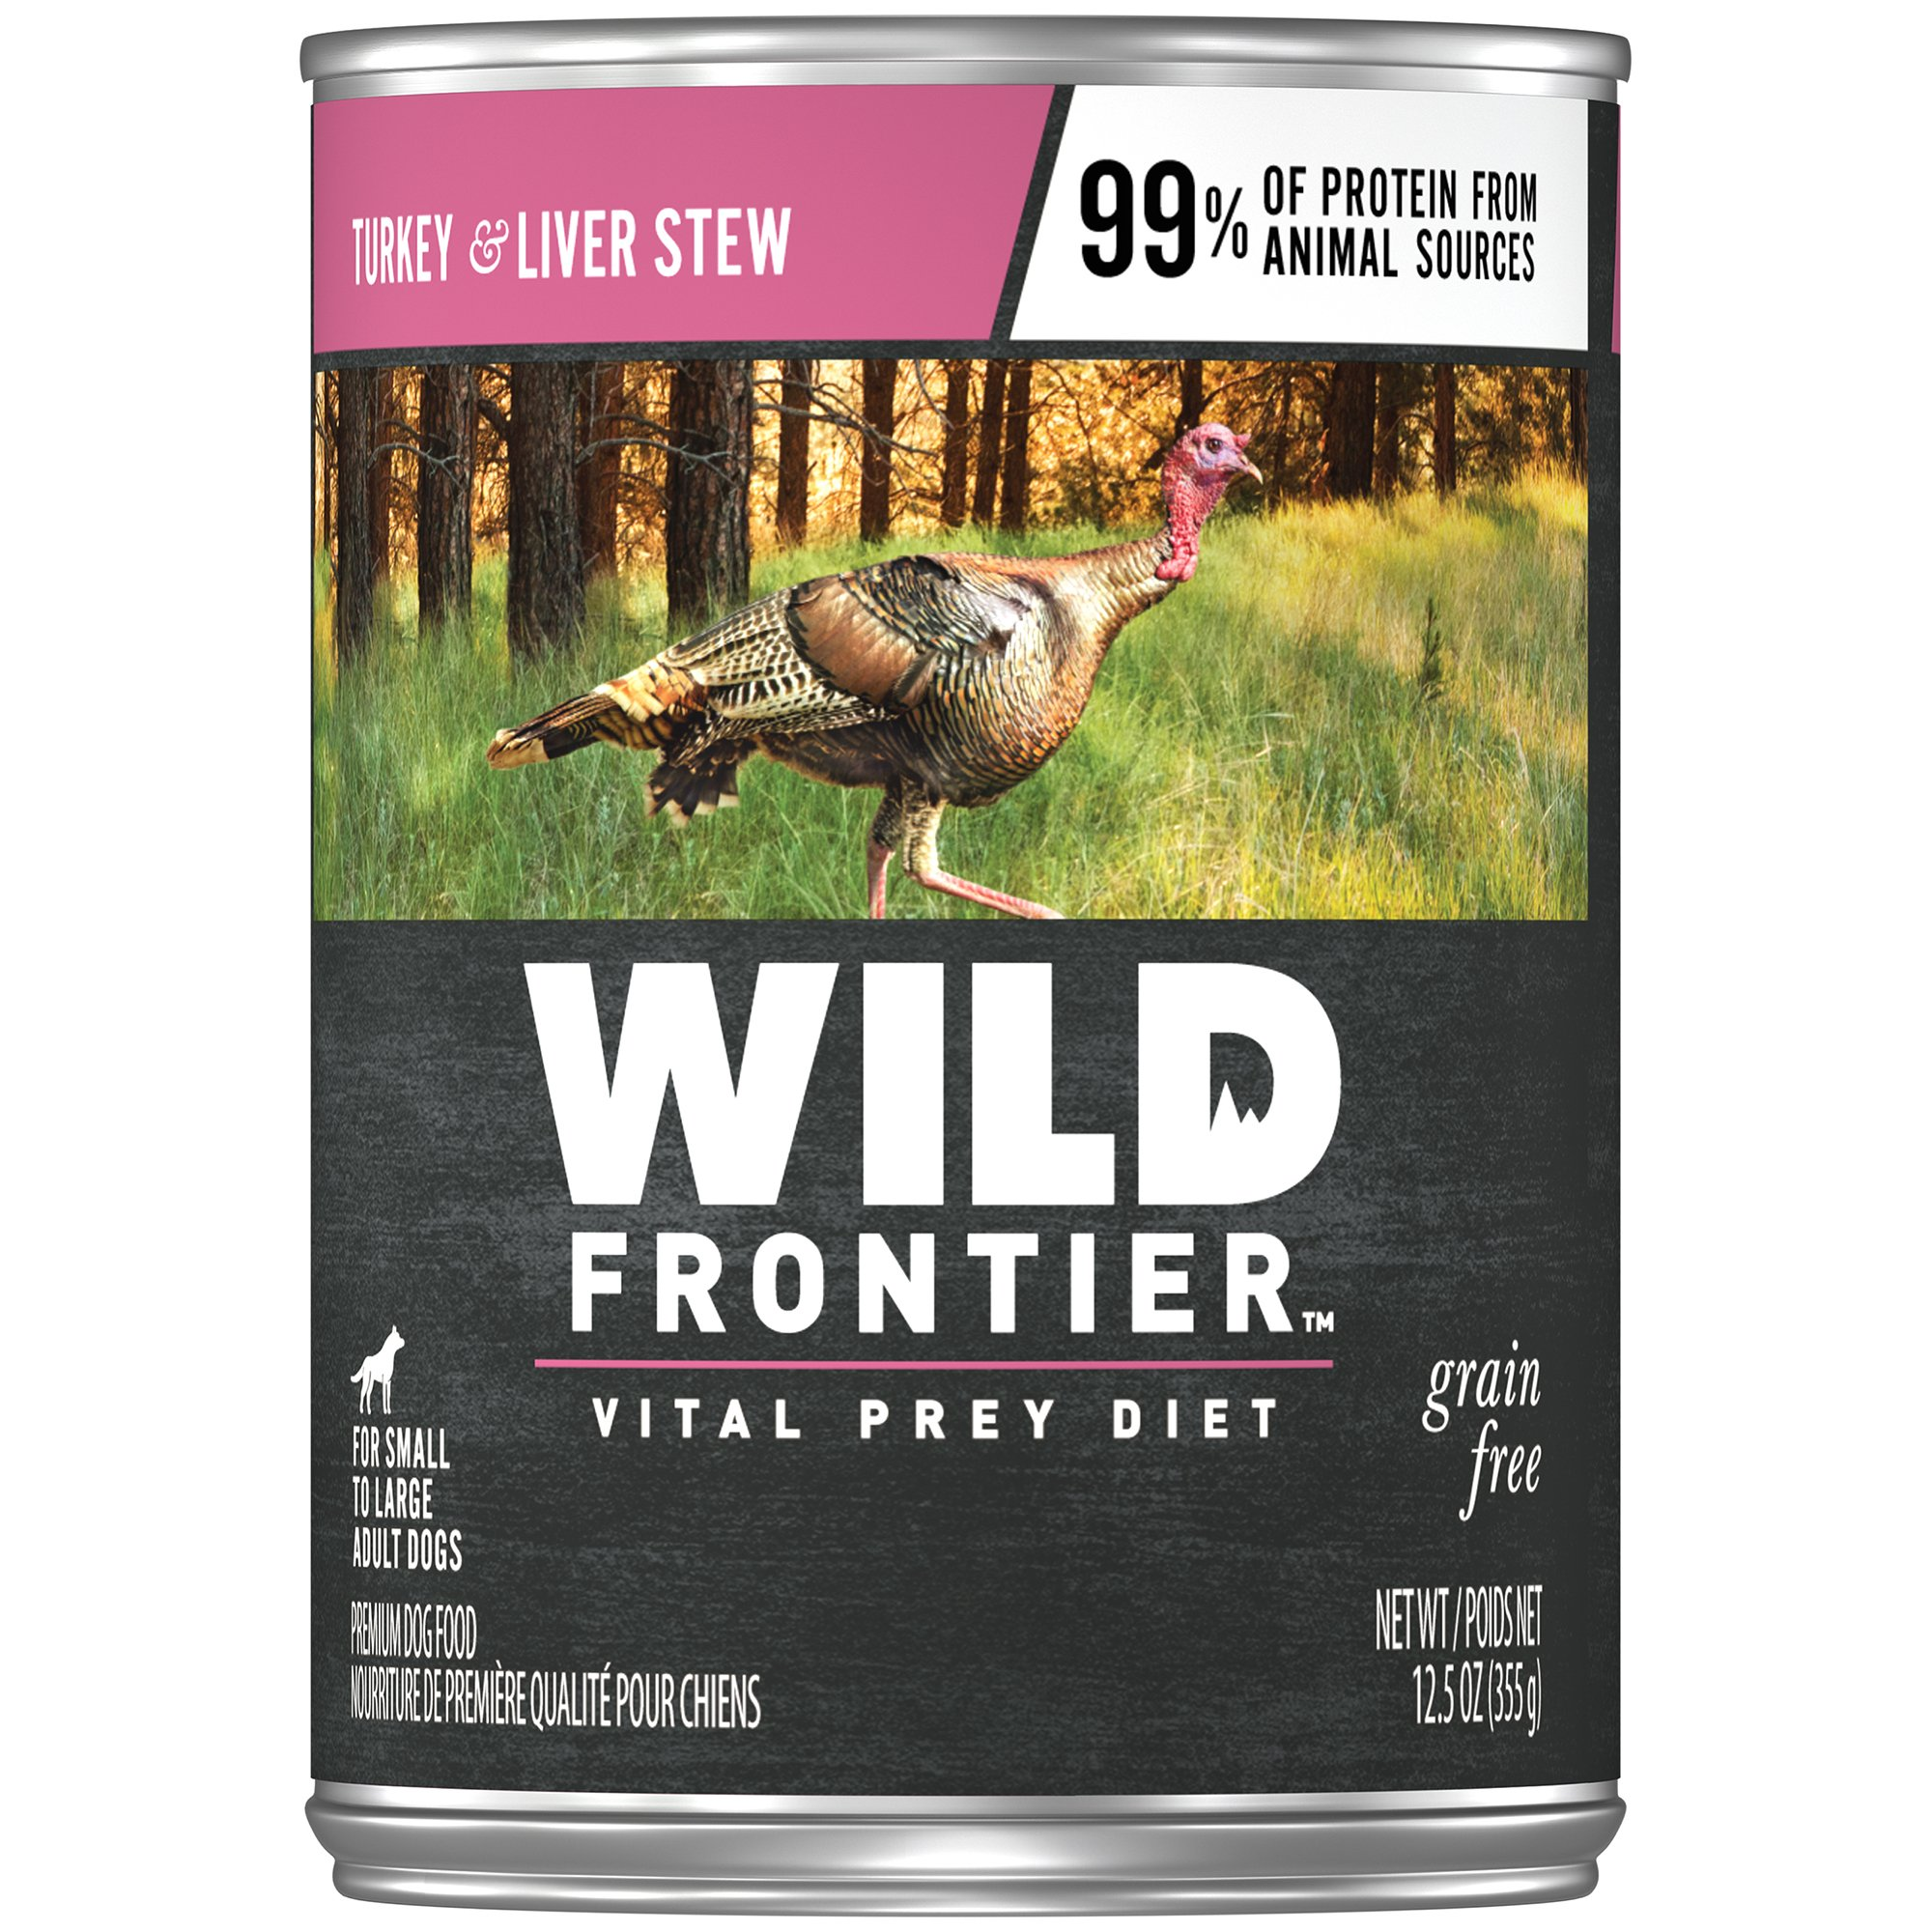 Nutro Wild Frontier Grain Free Adult Canned Wet Dog Food Chunks In Gravy Large Bird Recipe Turkey Stew With Nutrient Rich Liver, (12) 12.5 Oz. Cans by Wild Frontier Wet Dog